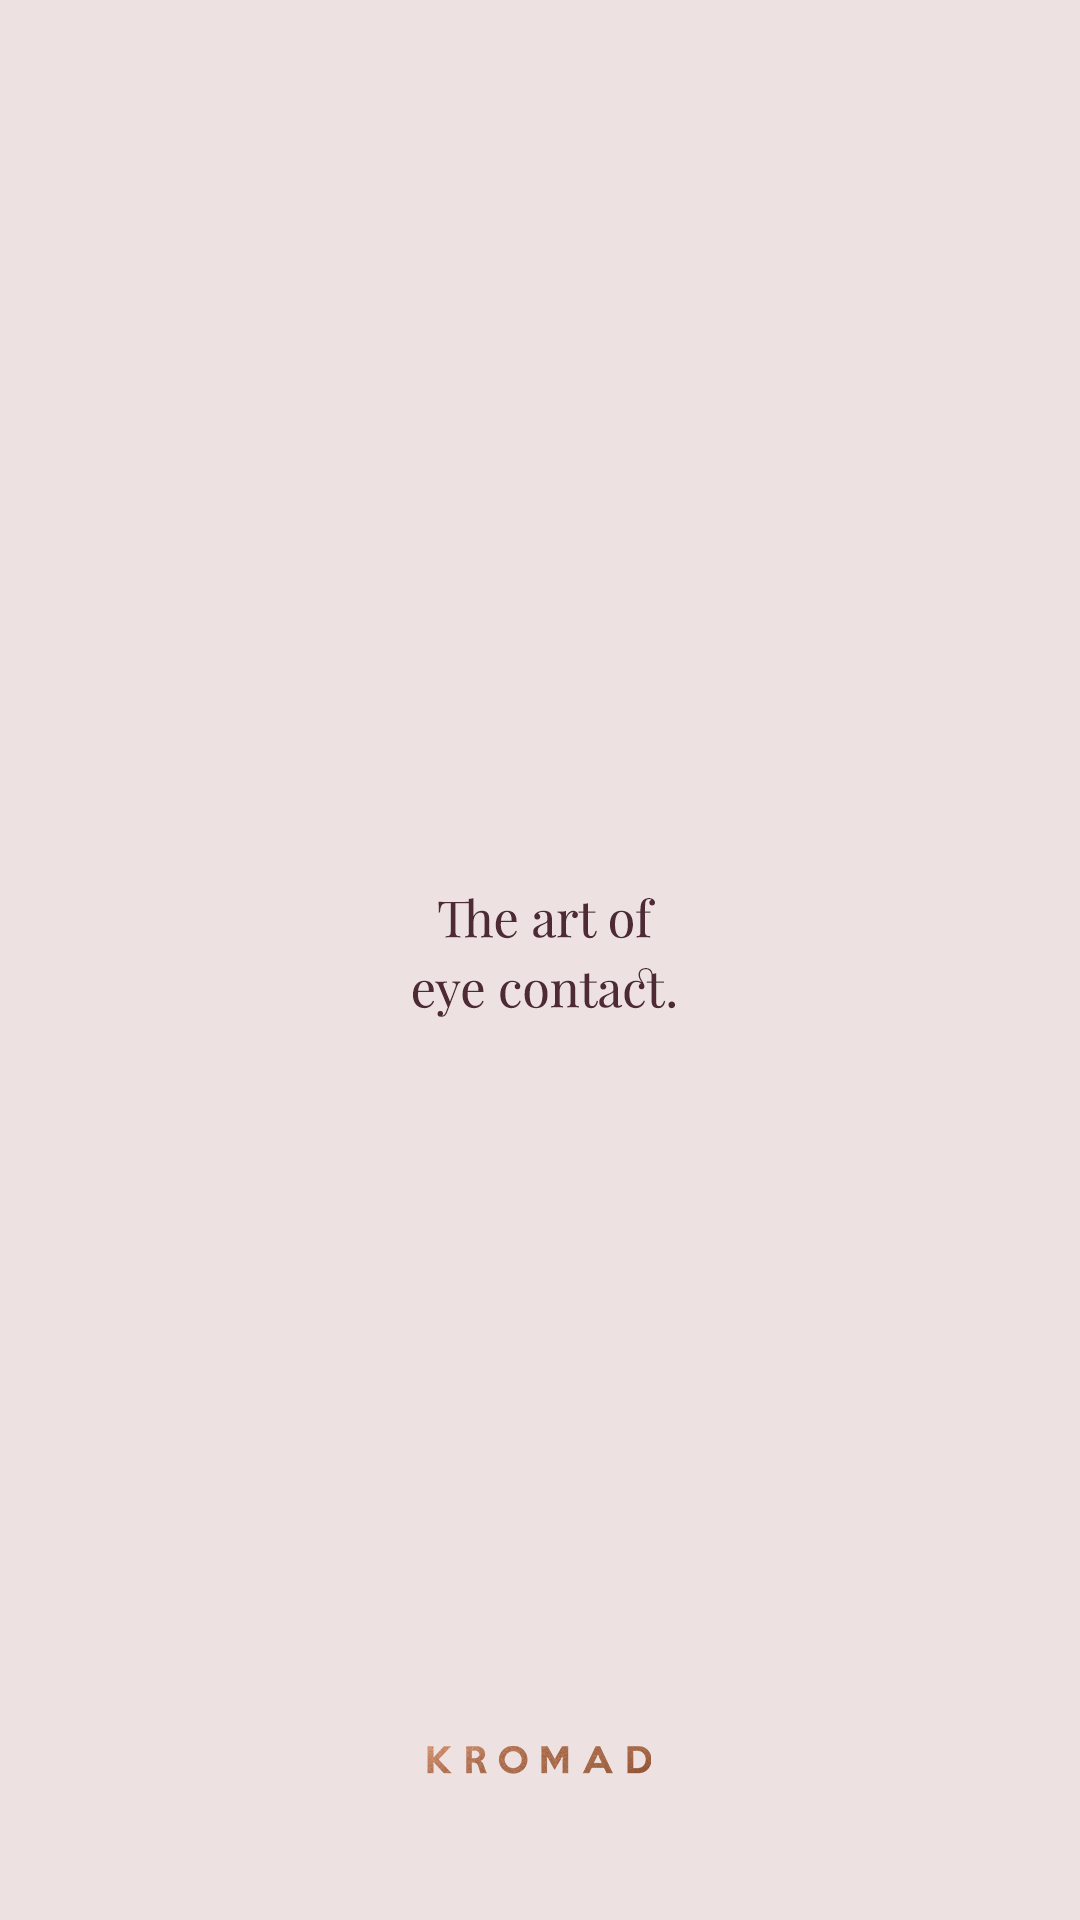 The art of eye contact. | #Motivational #Quotes ...